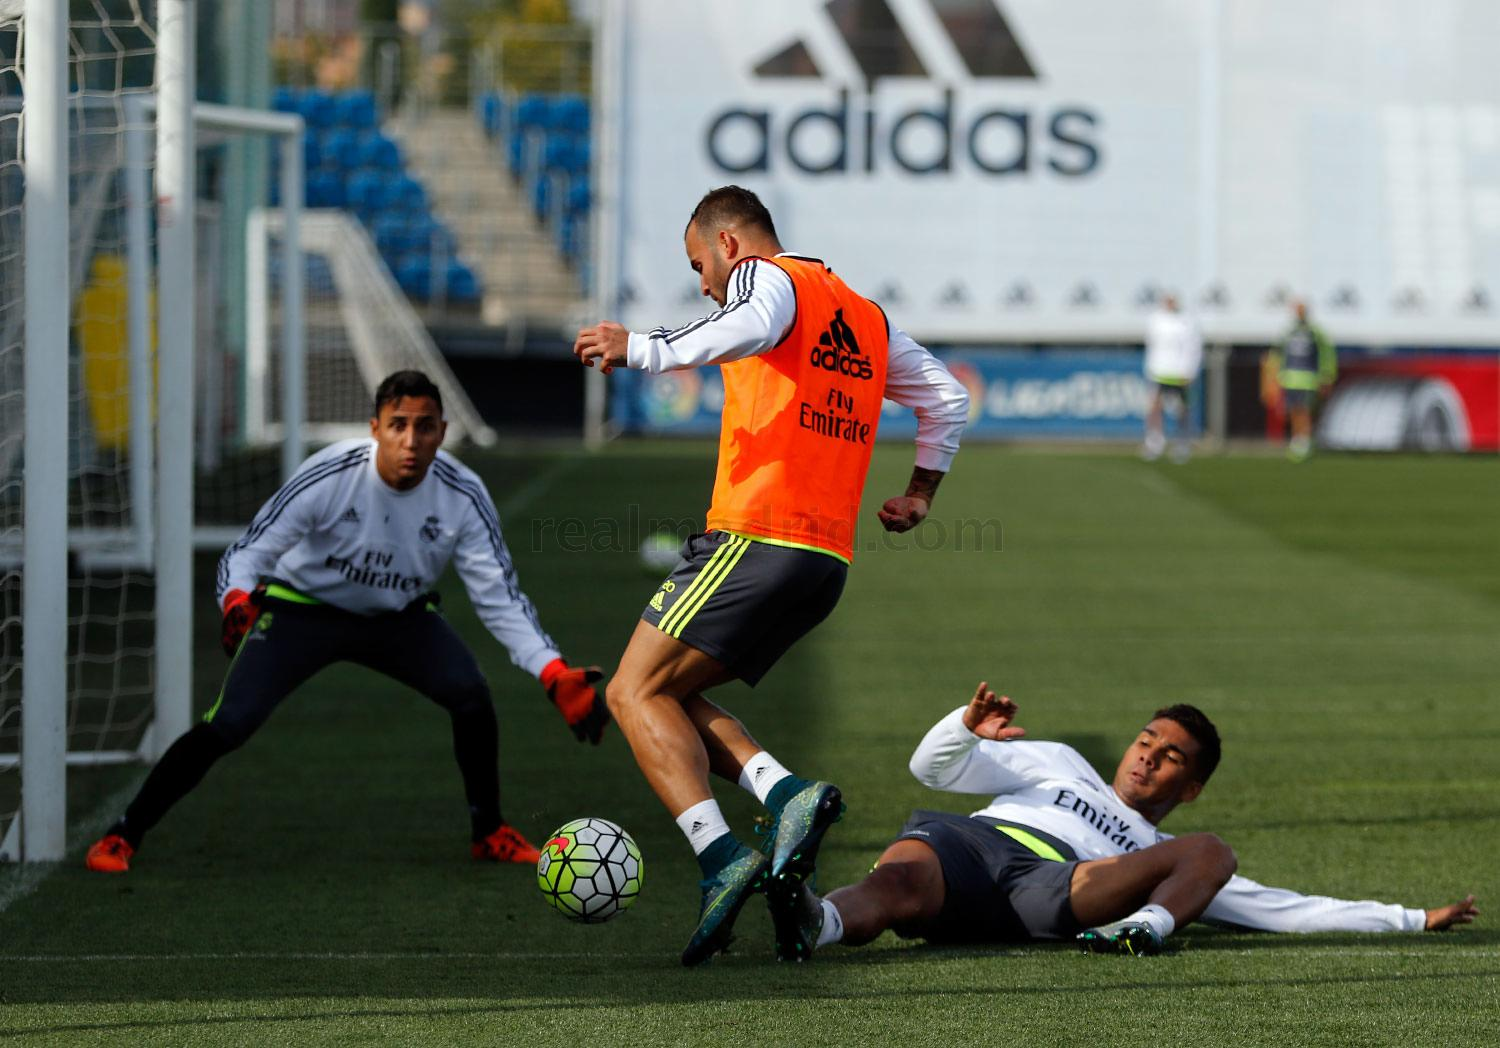 Real Madrid - Entrenamiento del Real Madrid - 16-10-2015